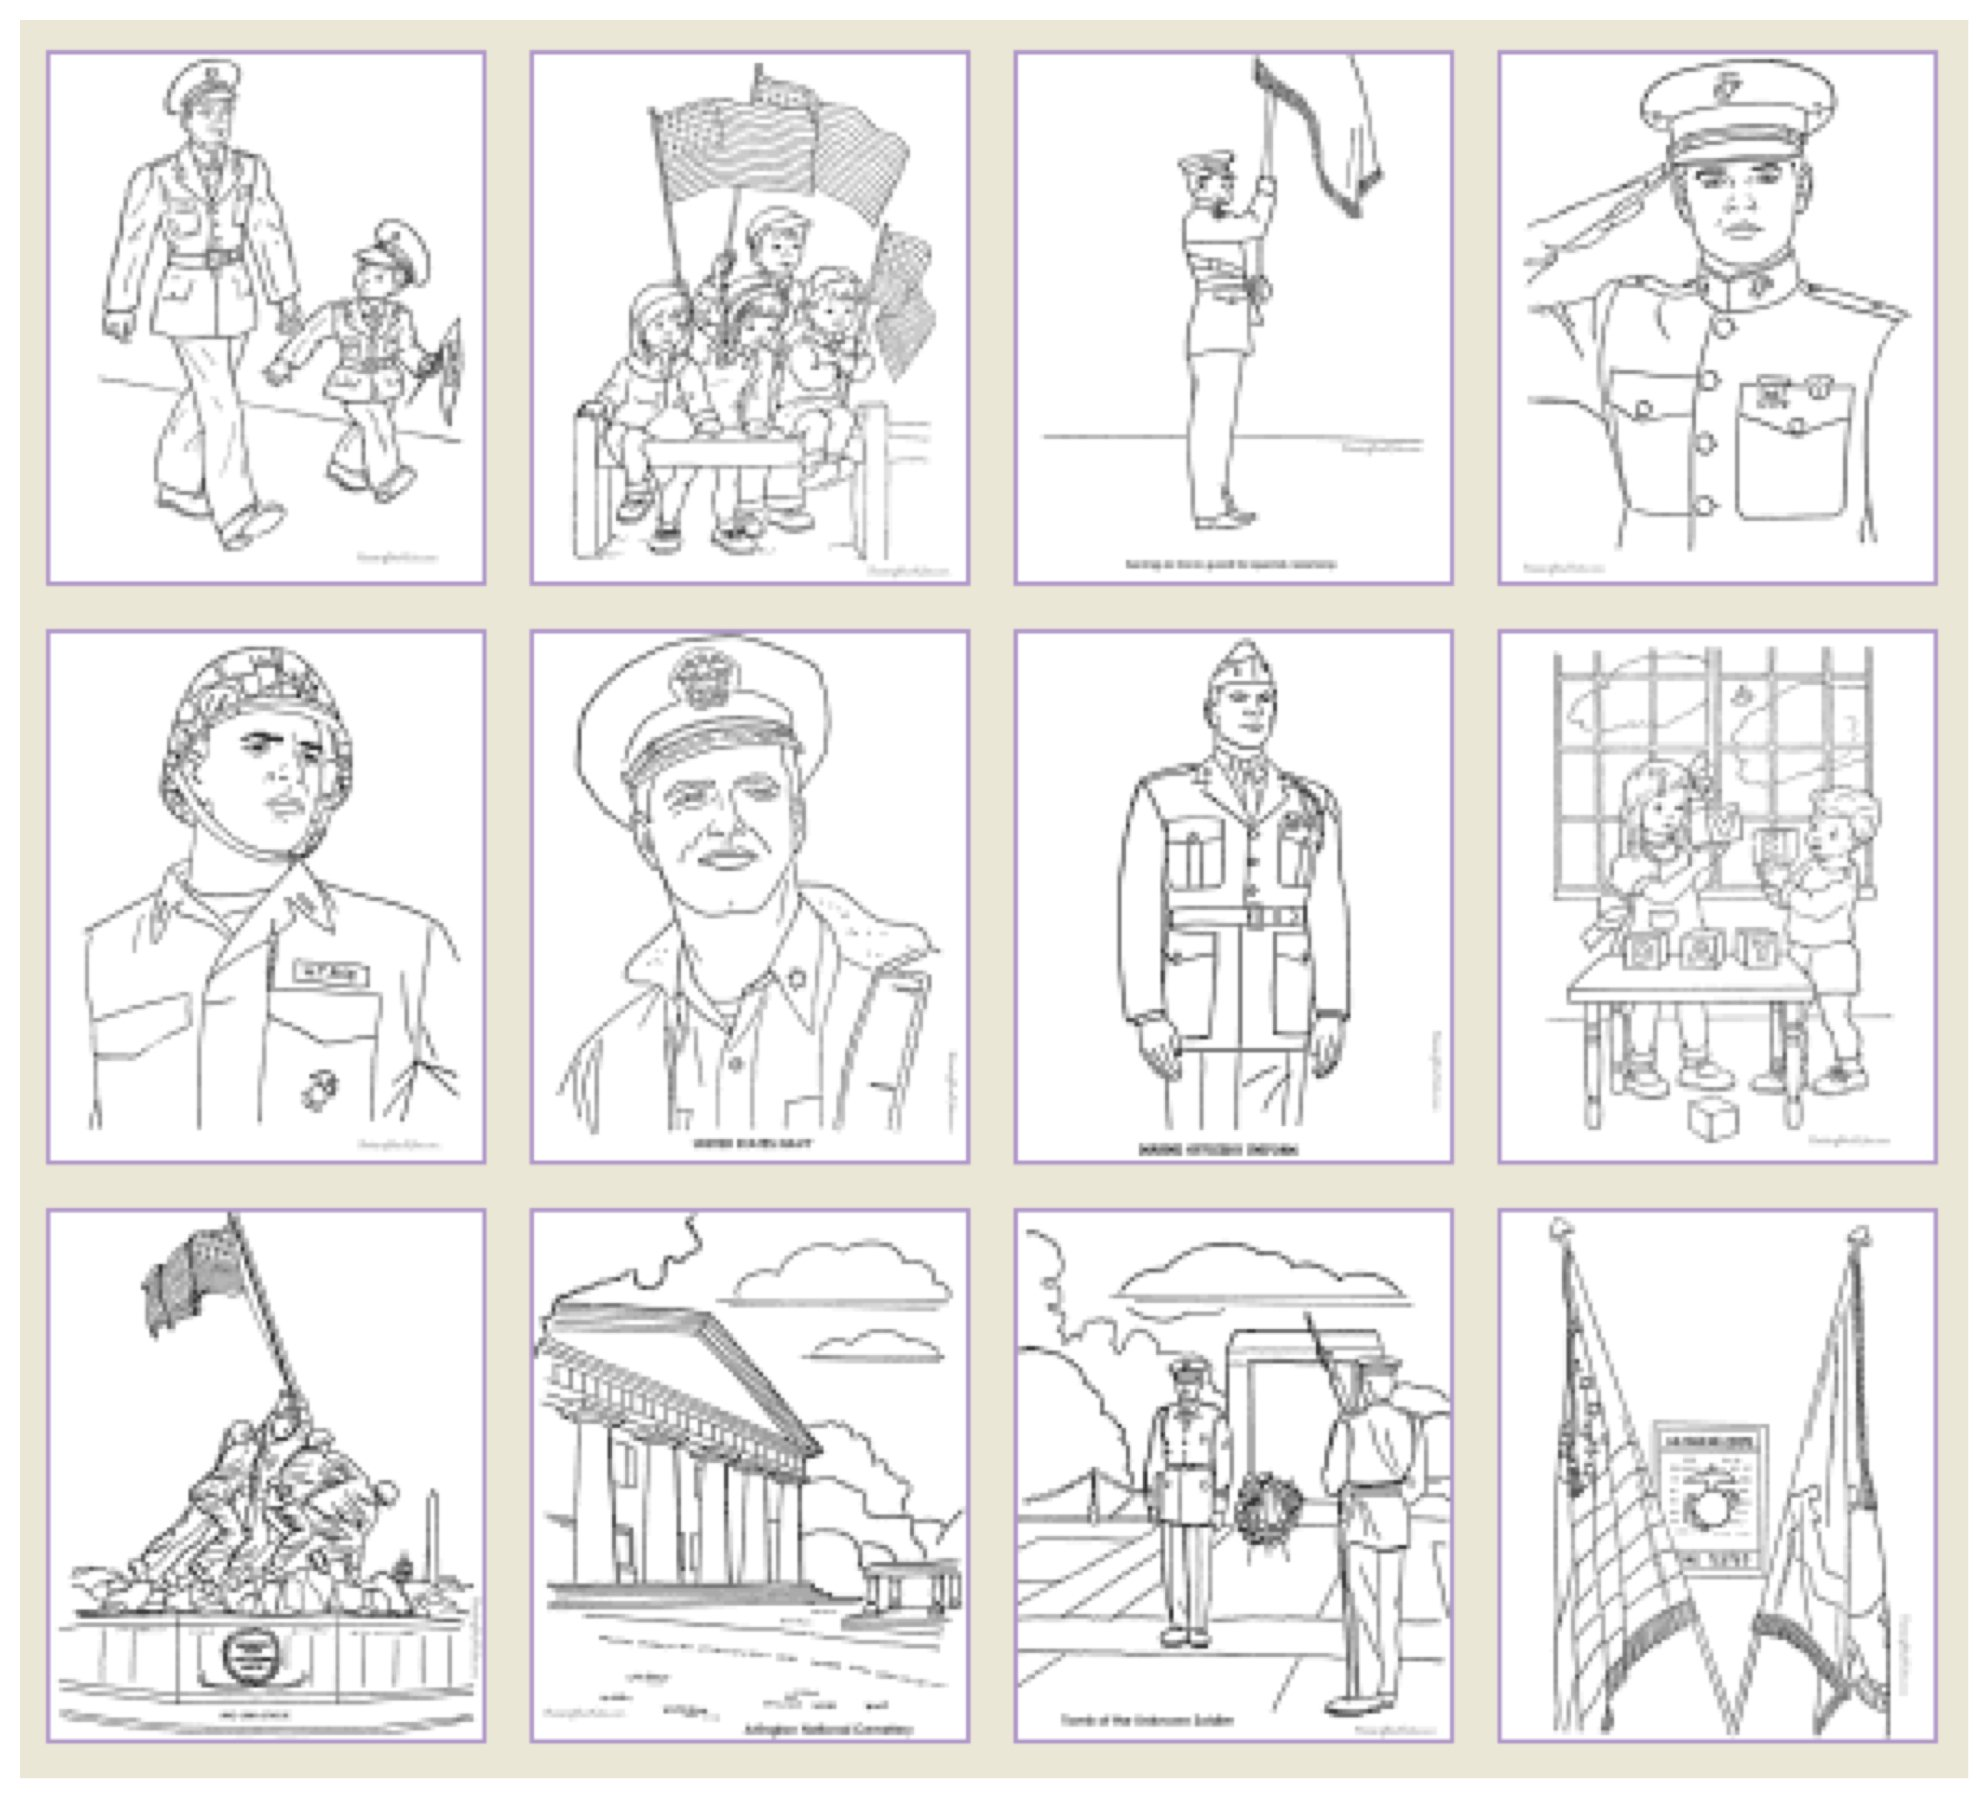 Free printable coloring pages veterans day - Free Printable Veterans Day Coloring Pages Veterans Day Printable Games